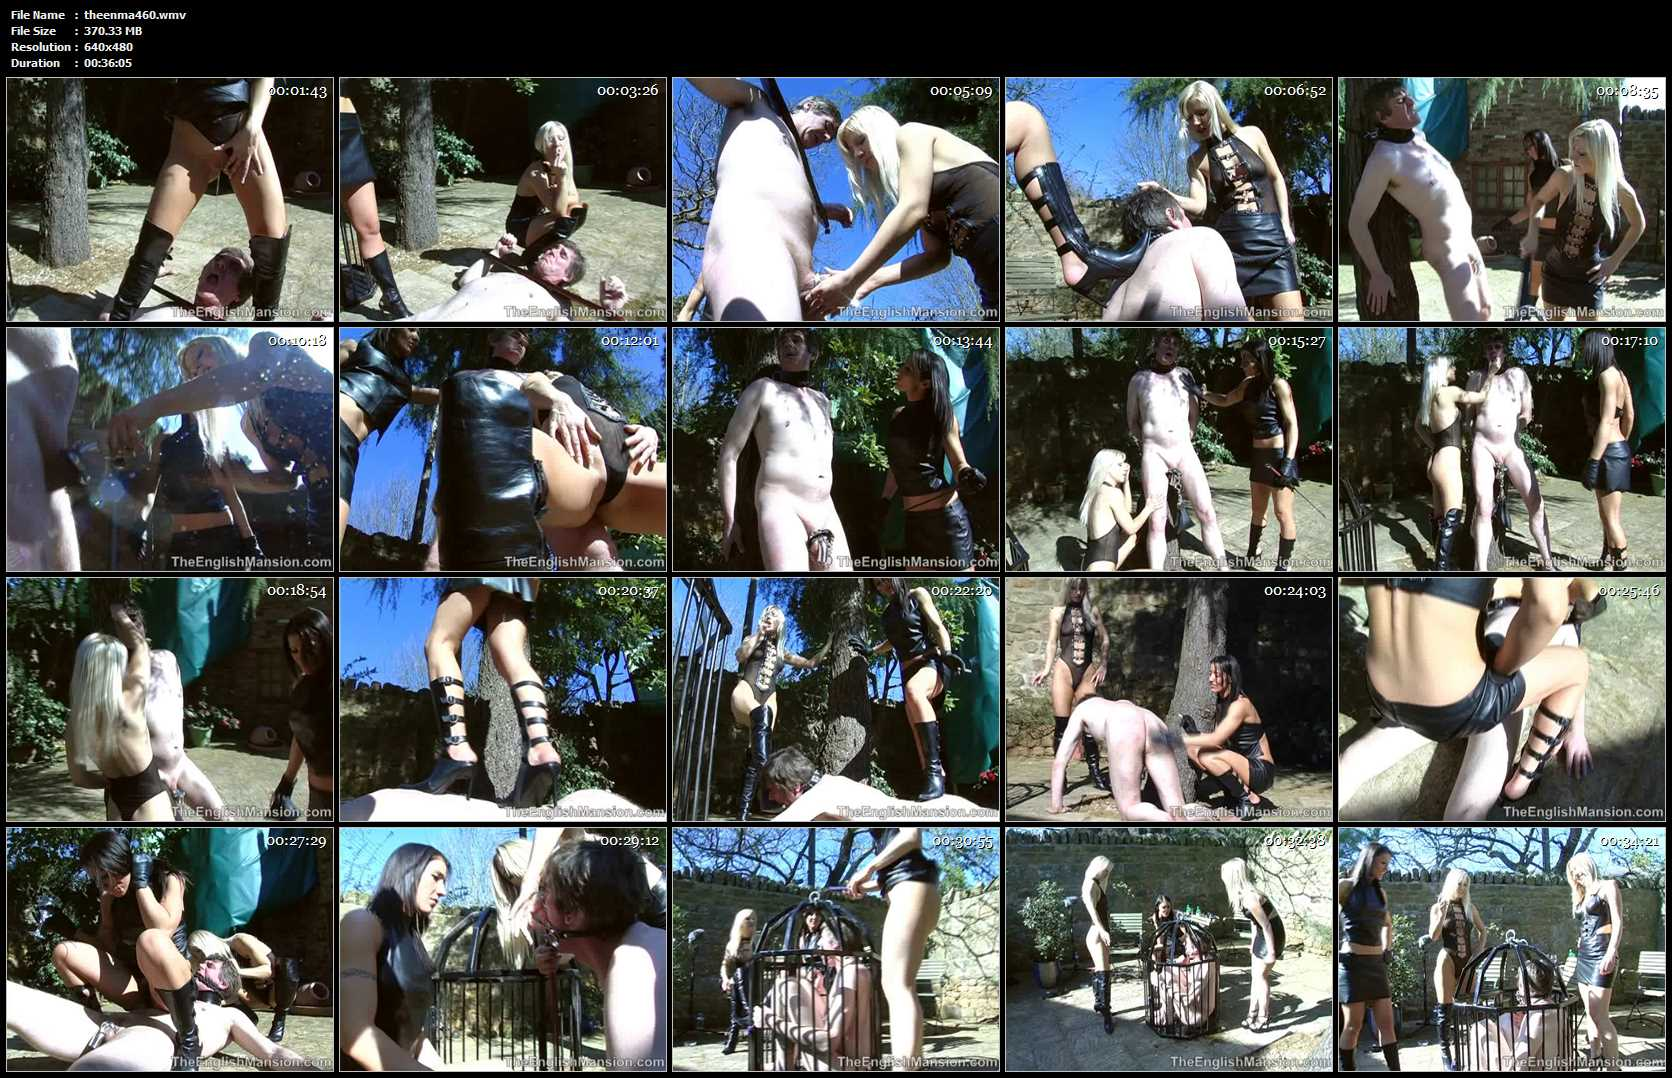 Mistress Sidonia, Mistress Vixen, Princess Anuska In Scene: The Leather Bitches - THEENGLISHMANSION - SD/480p/WMV